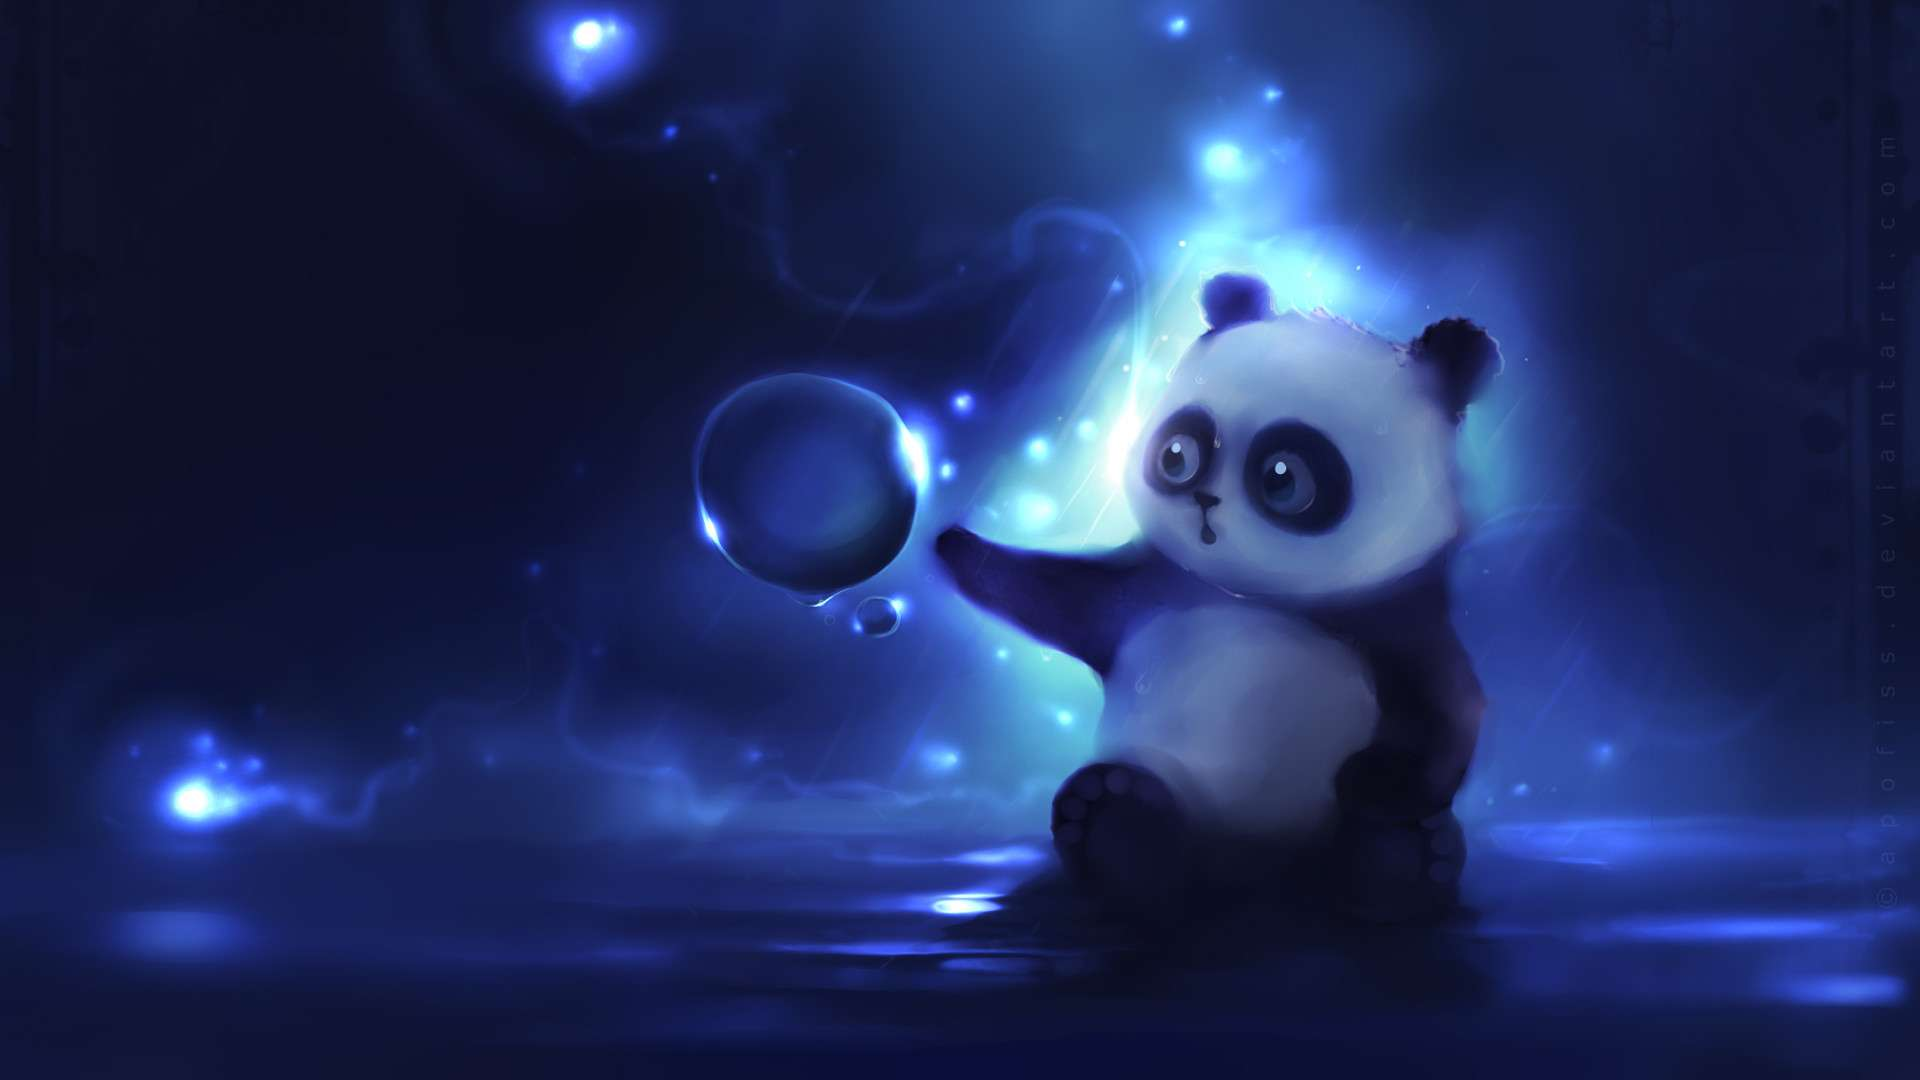 Really Cute Wallpapers Designs